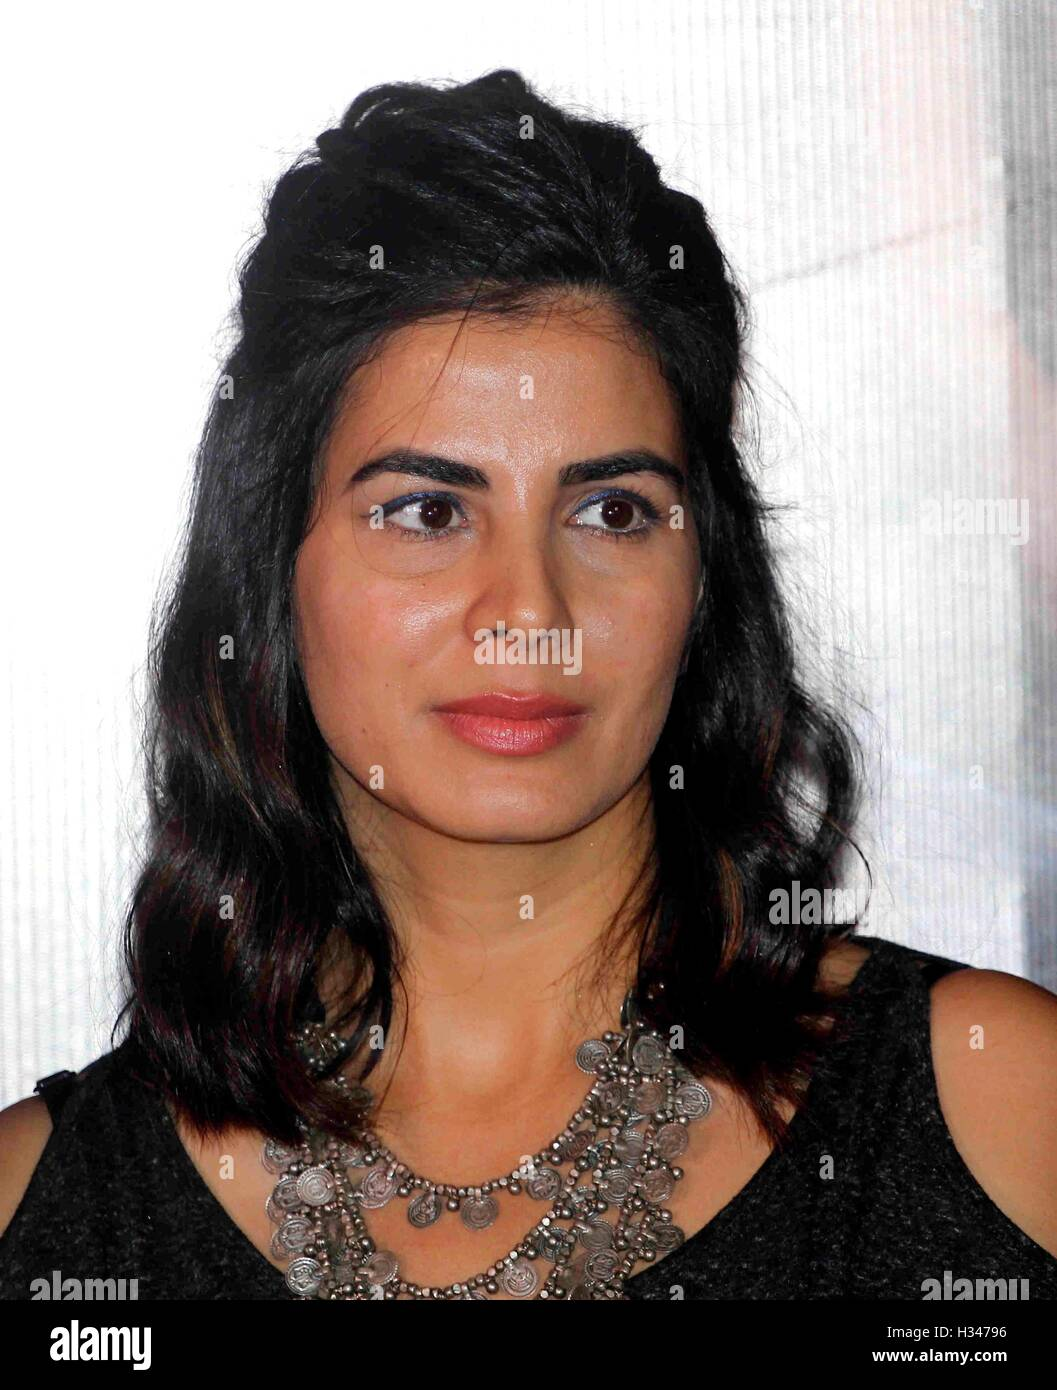 Bollywood Actor Kirti Kulhari During The Press Conference Of The